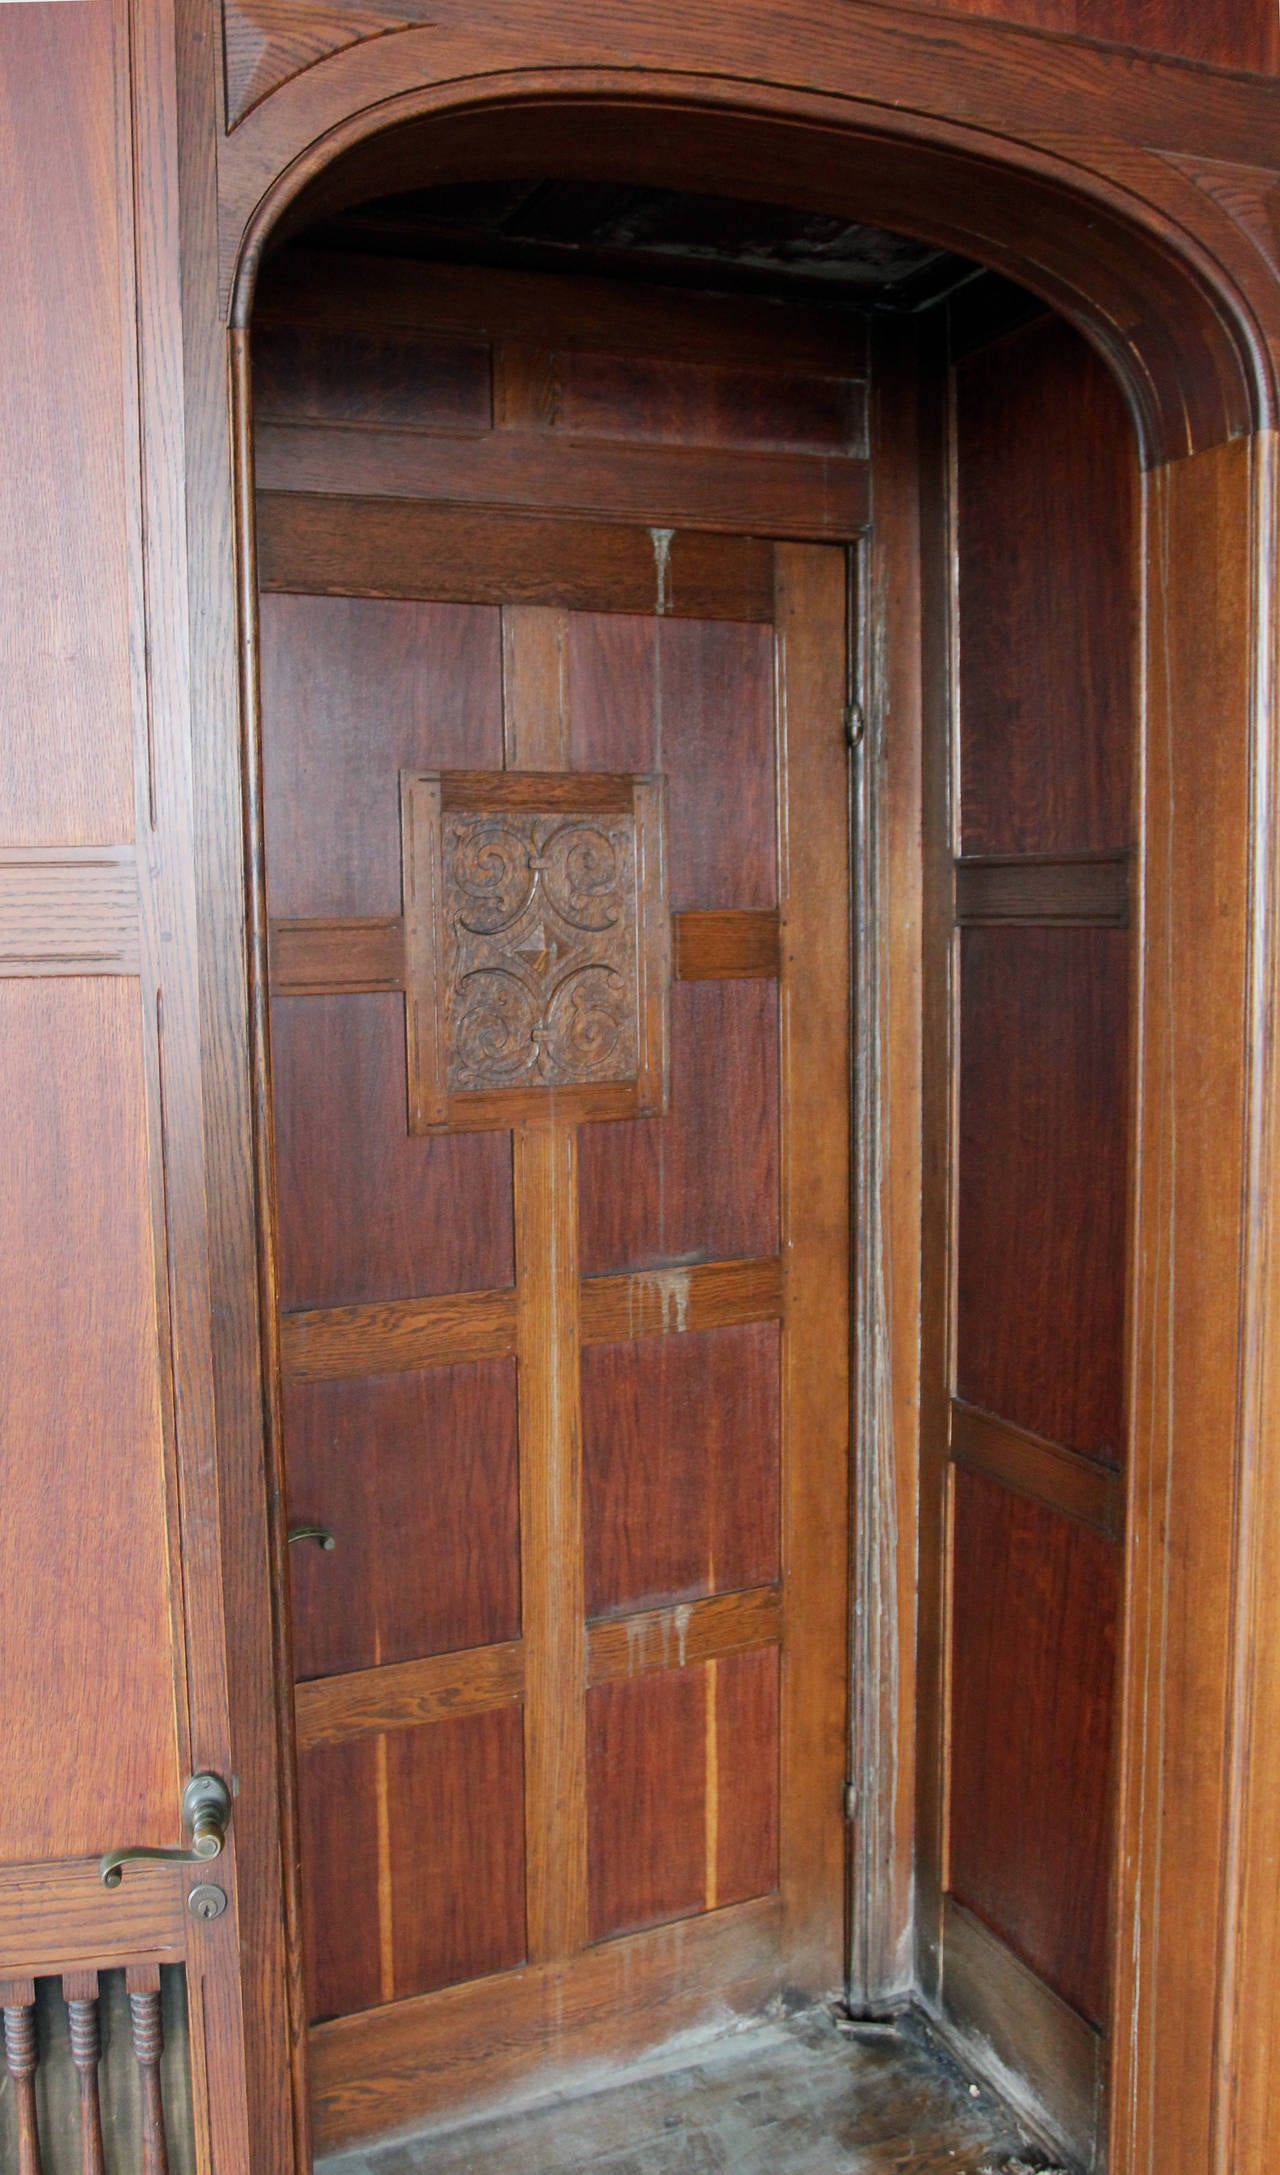 Panelled Room: 1905 Recessed Solid English Oak Paneled Room From Two